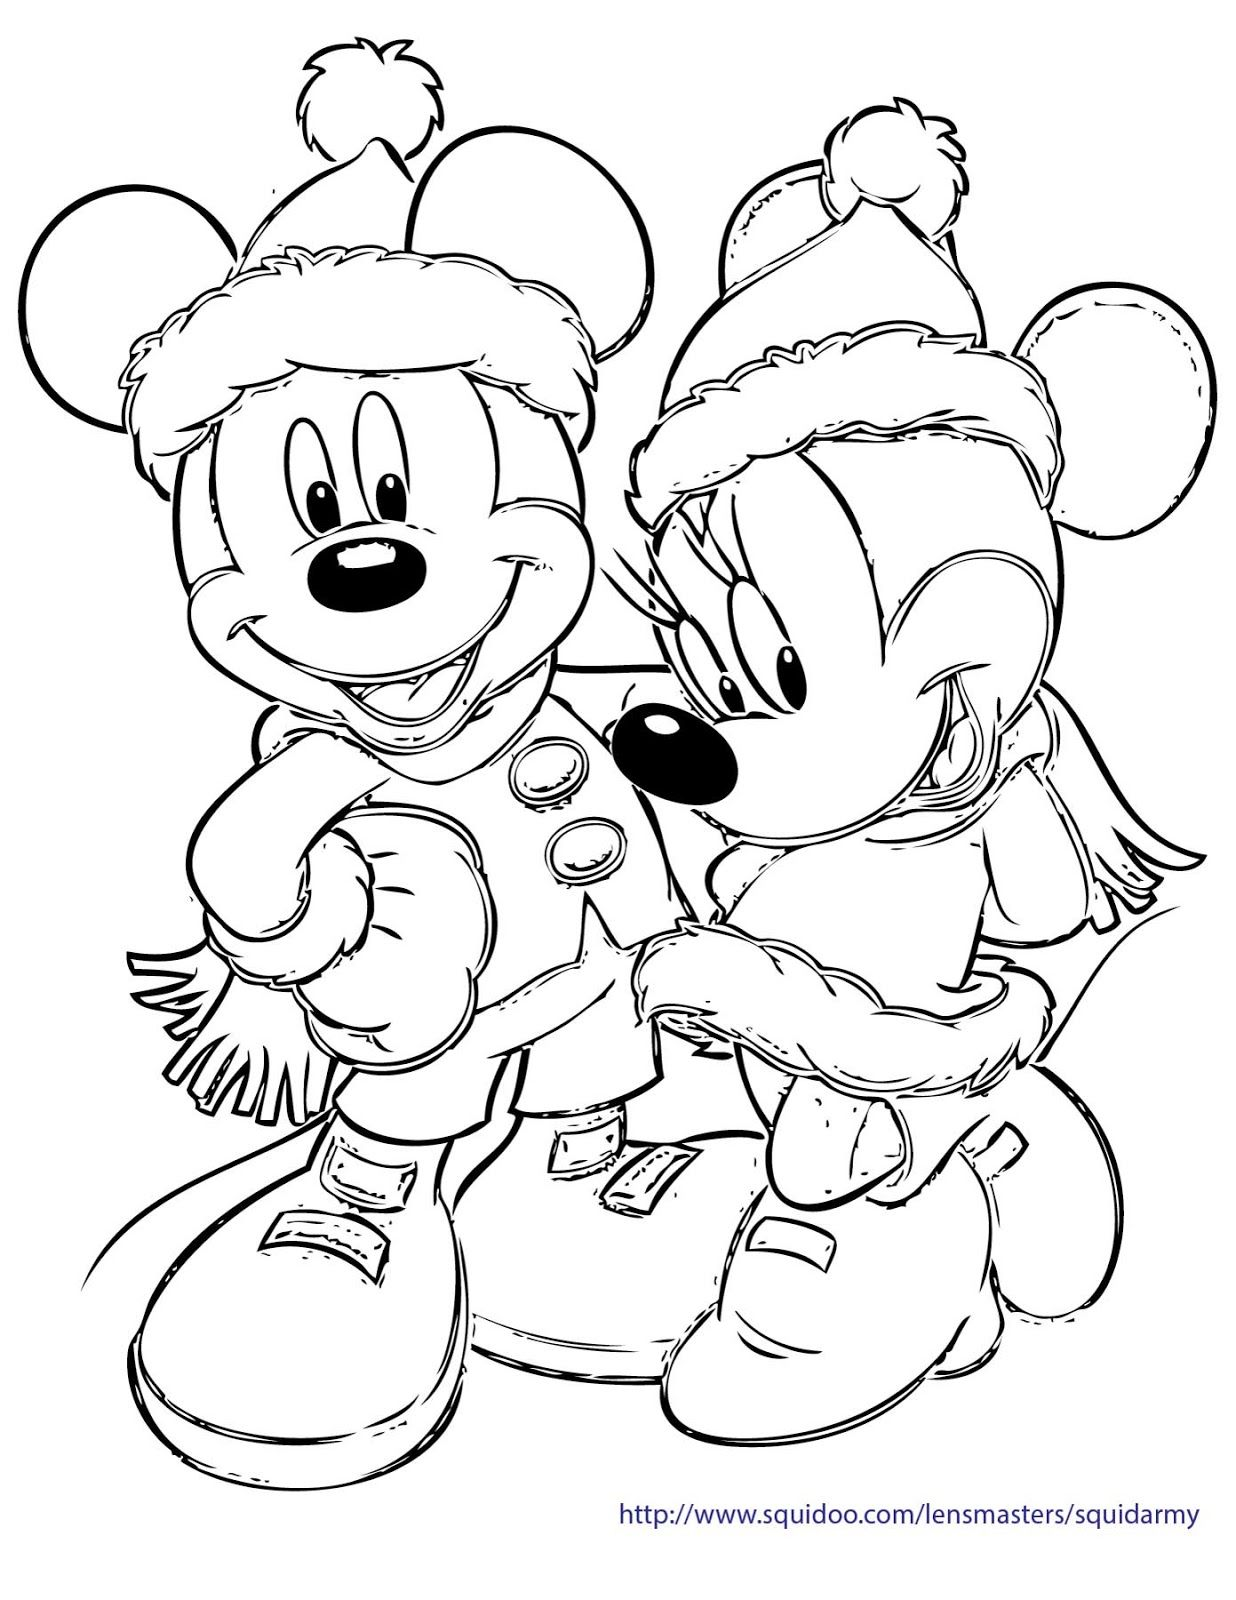 Free Christmas Coloring Pages Free Christmas Coloring Pages Mickey Mouse Coloring Pages Minnie Mouse Coloring Pages